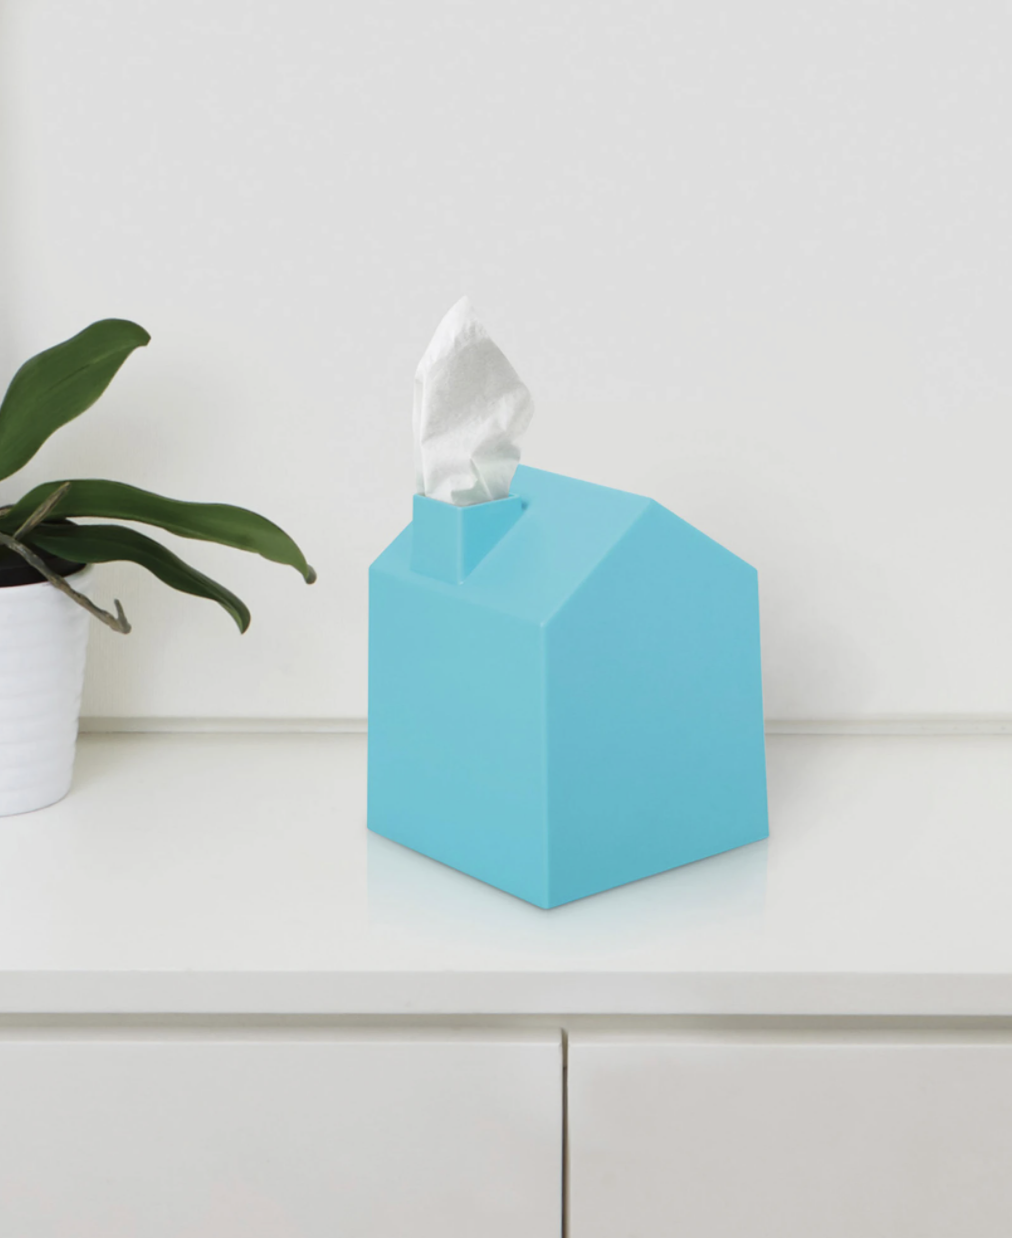 House-shaped tissue box placed on table